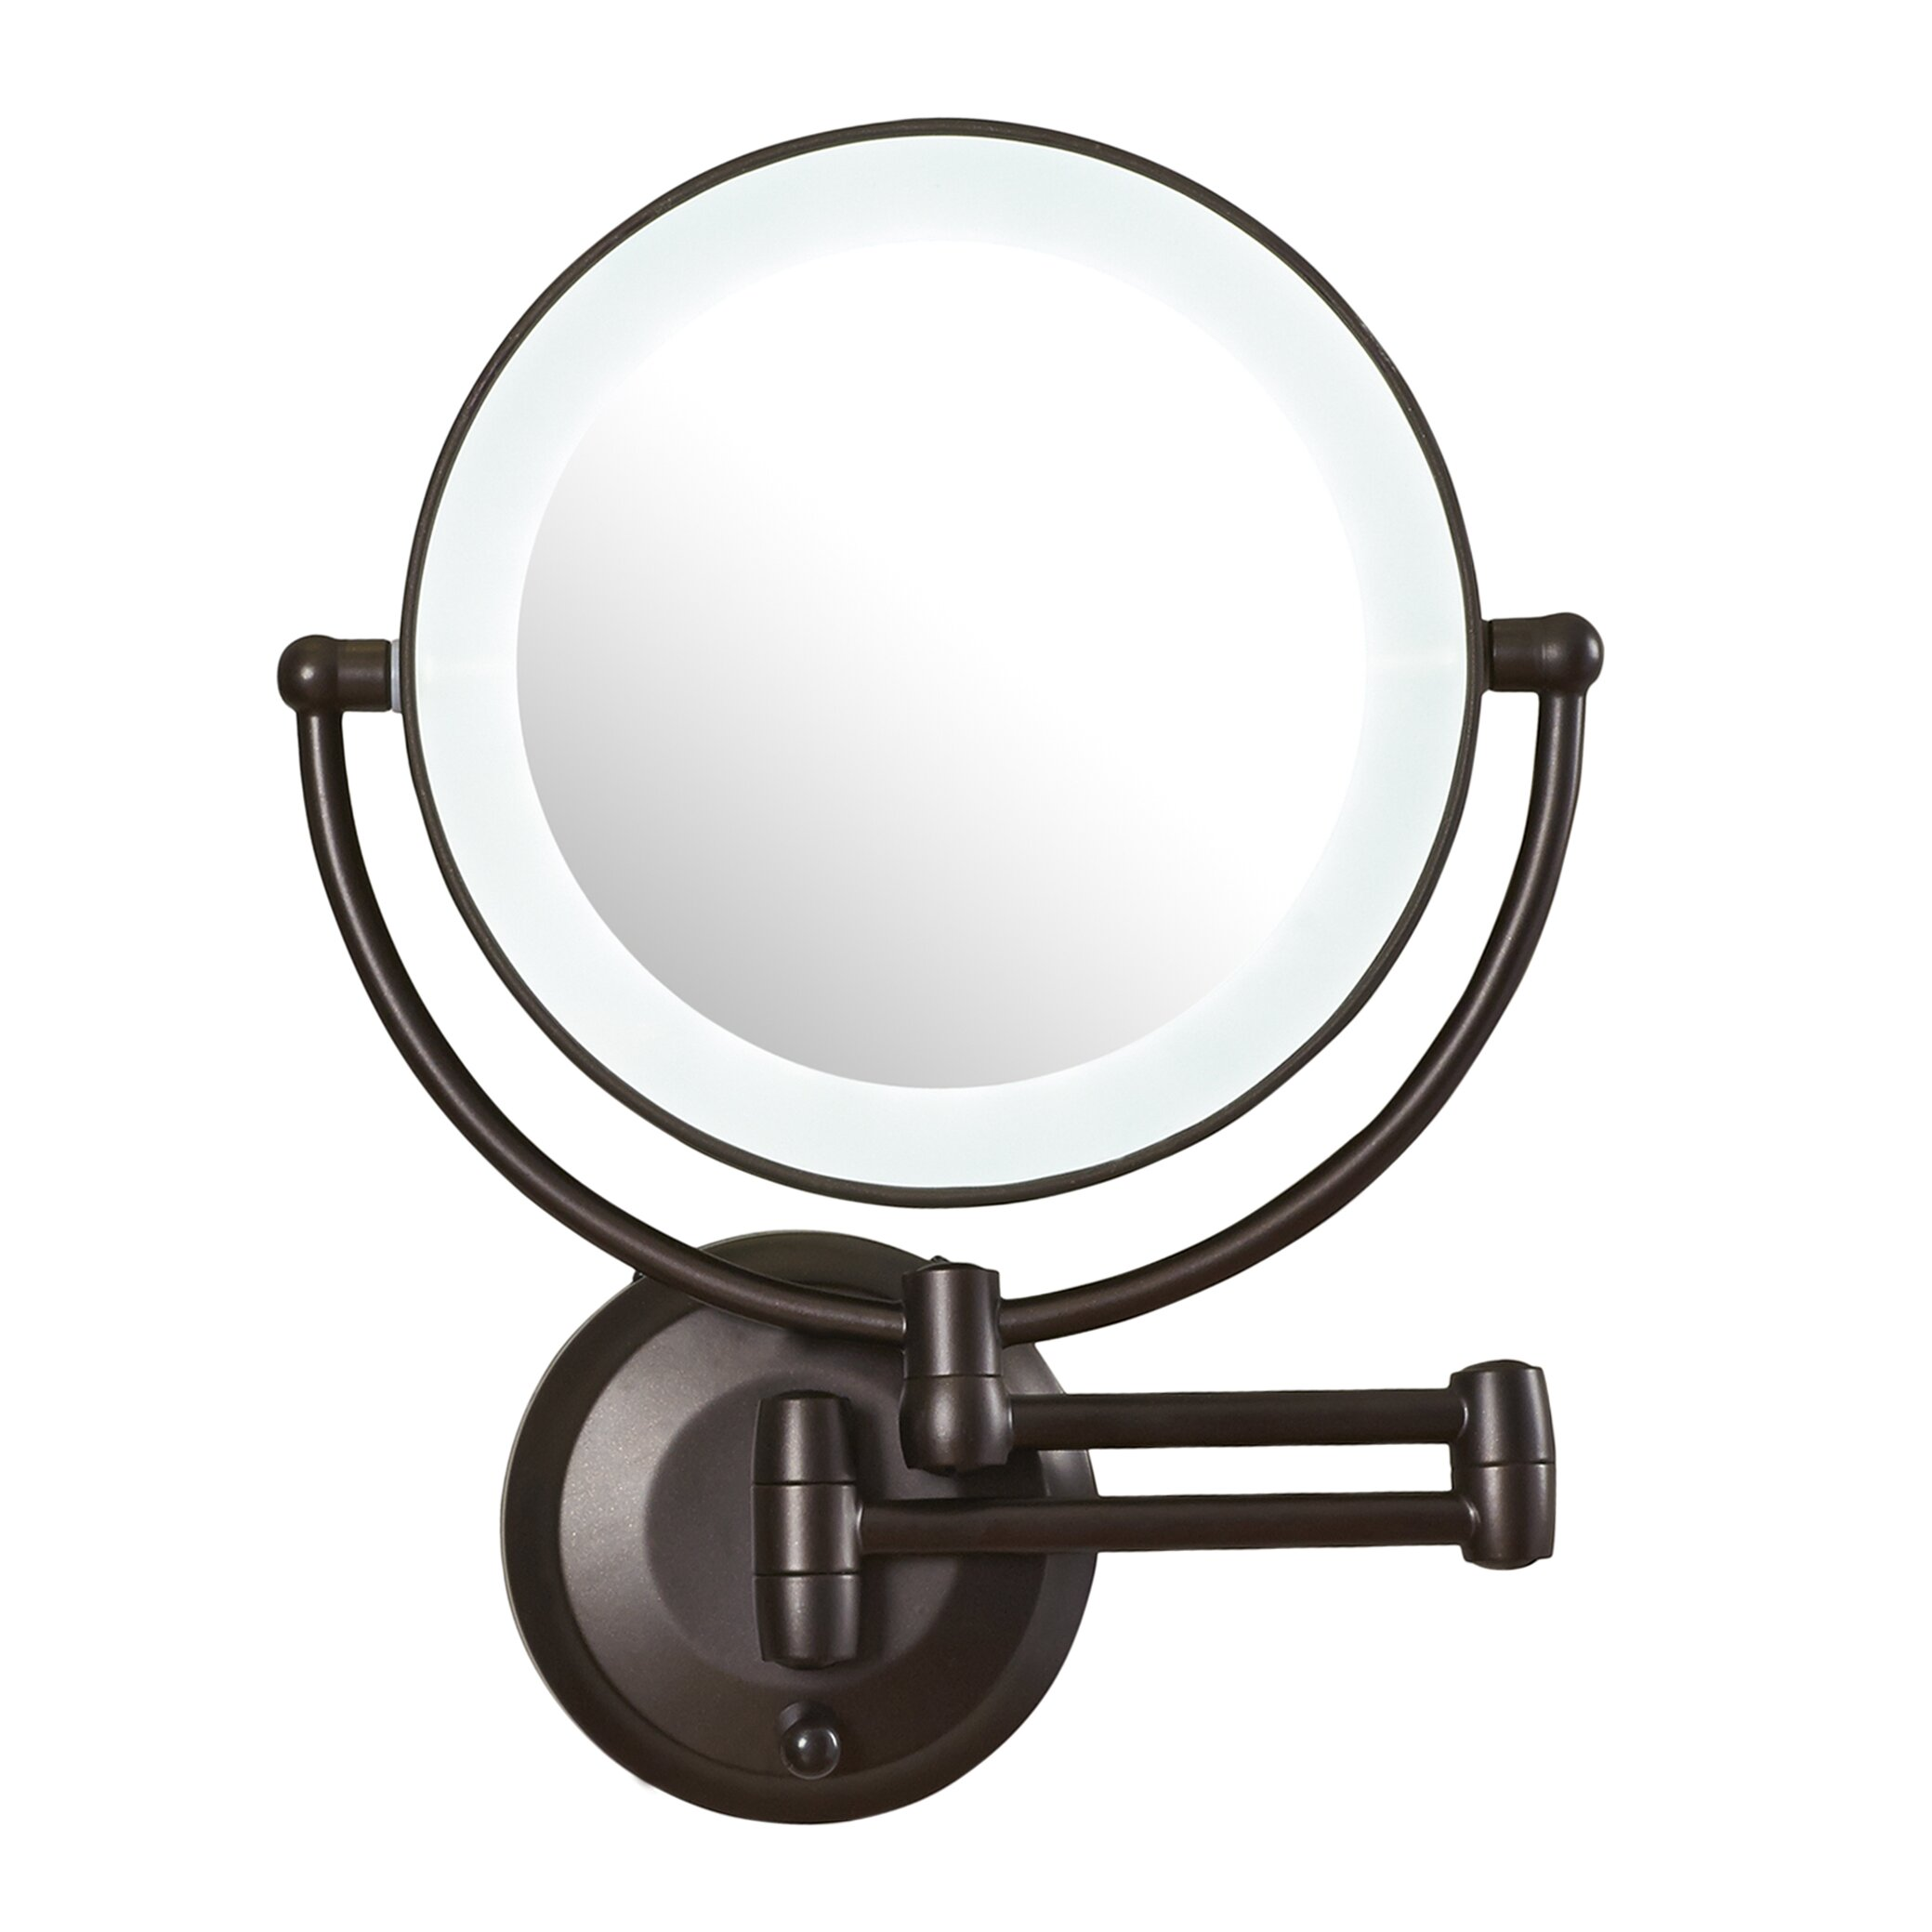 zadro led lighted 1x 10x magnification wall mount mirror reviews. Black Bedroom Furniture Sets. Home Design Ideas